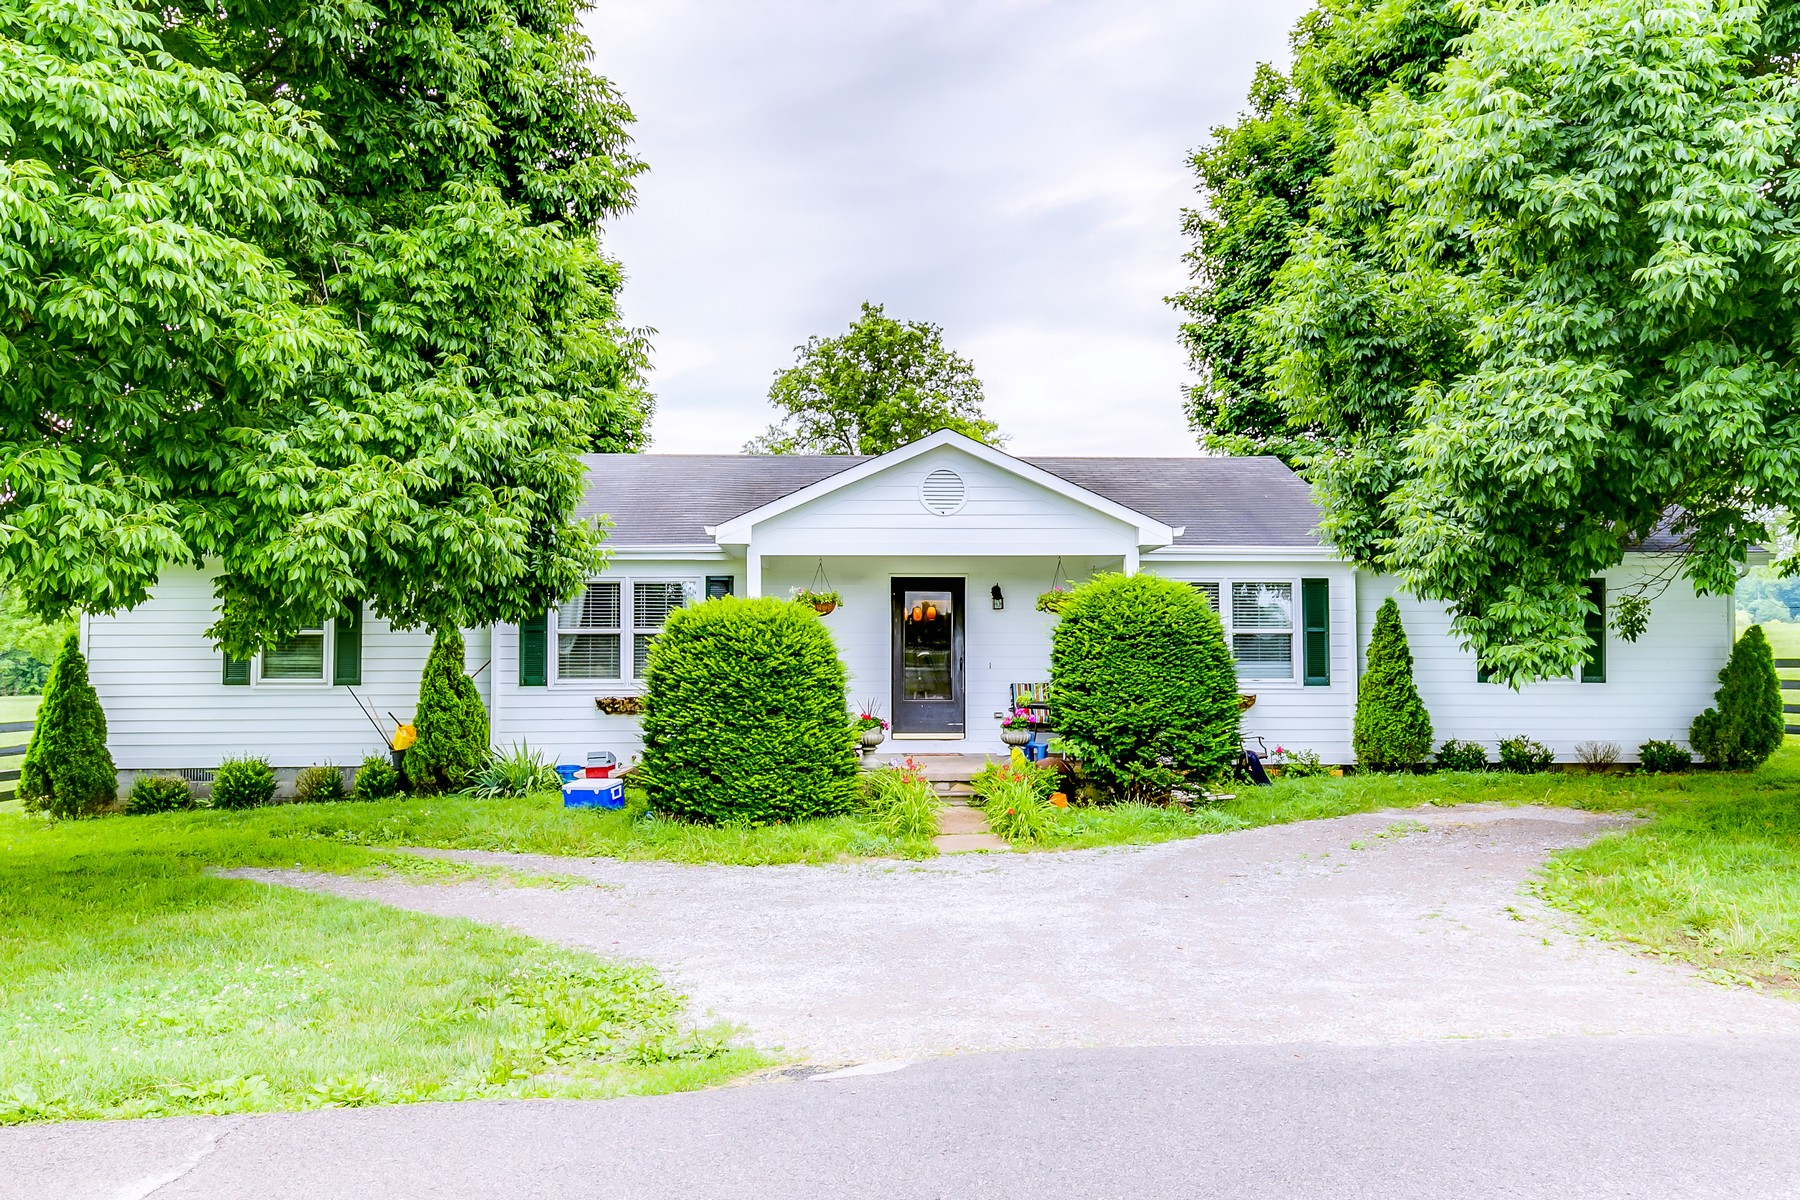 Additional photo for property listing at St. George Farm 635 Iron Works Pike Lexington, Kentucky 40511 United States